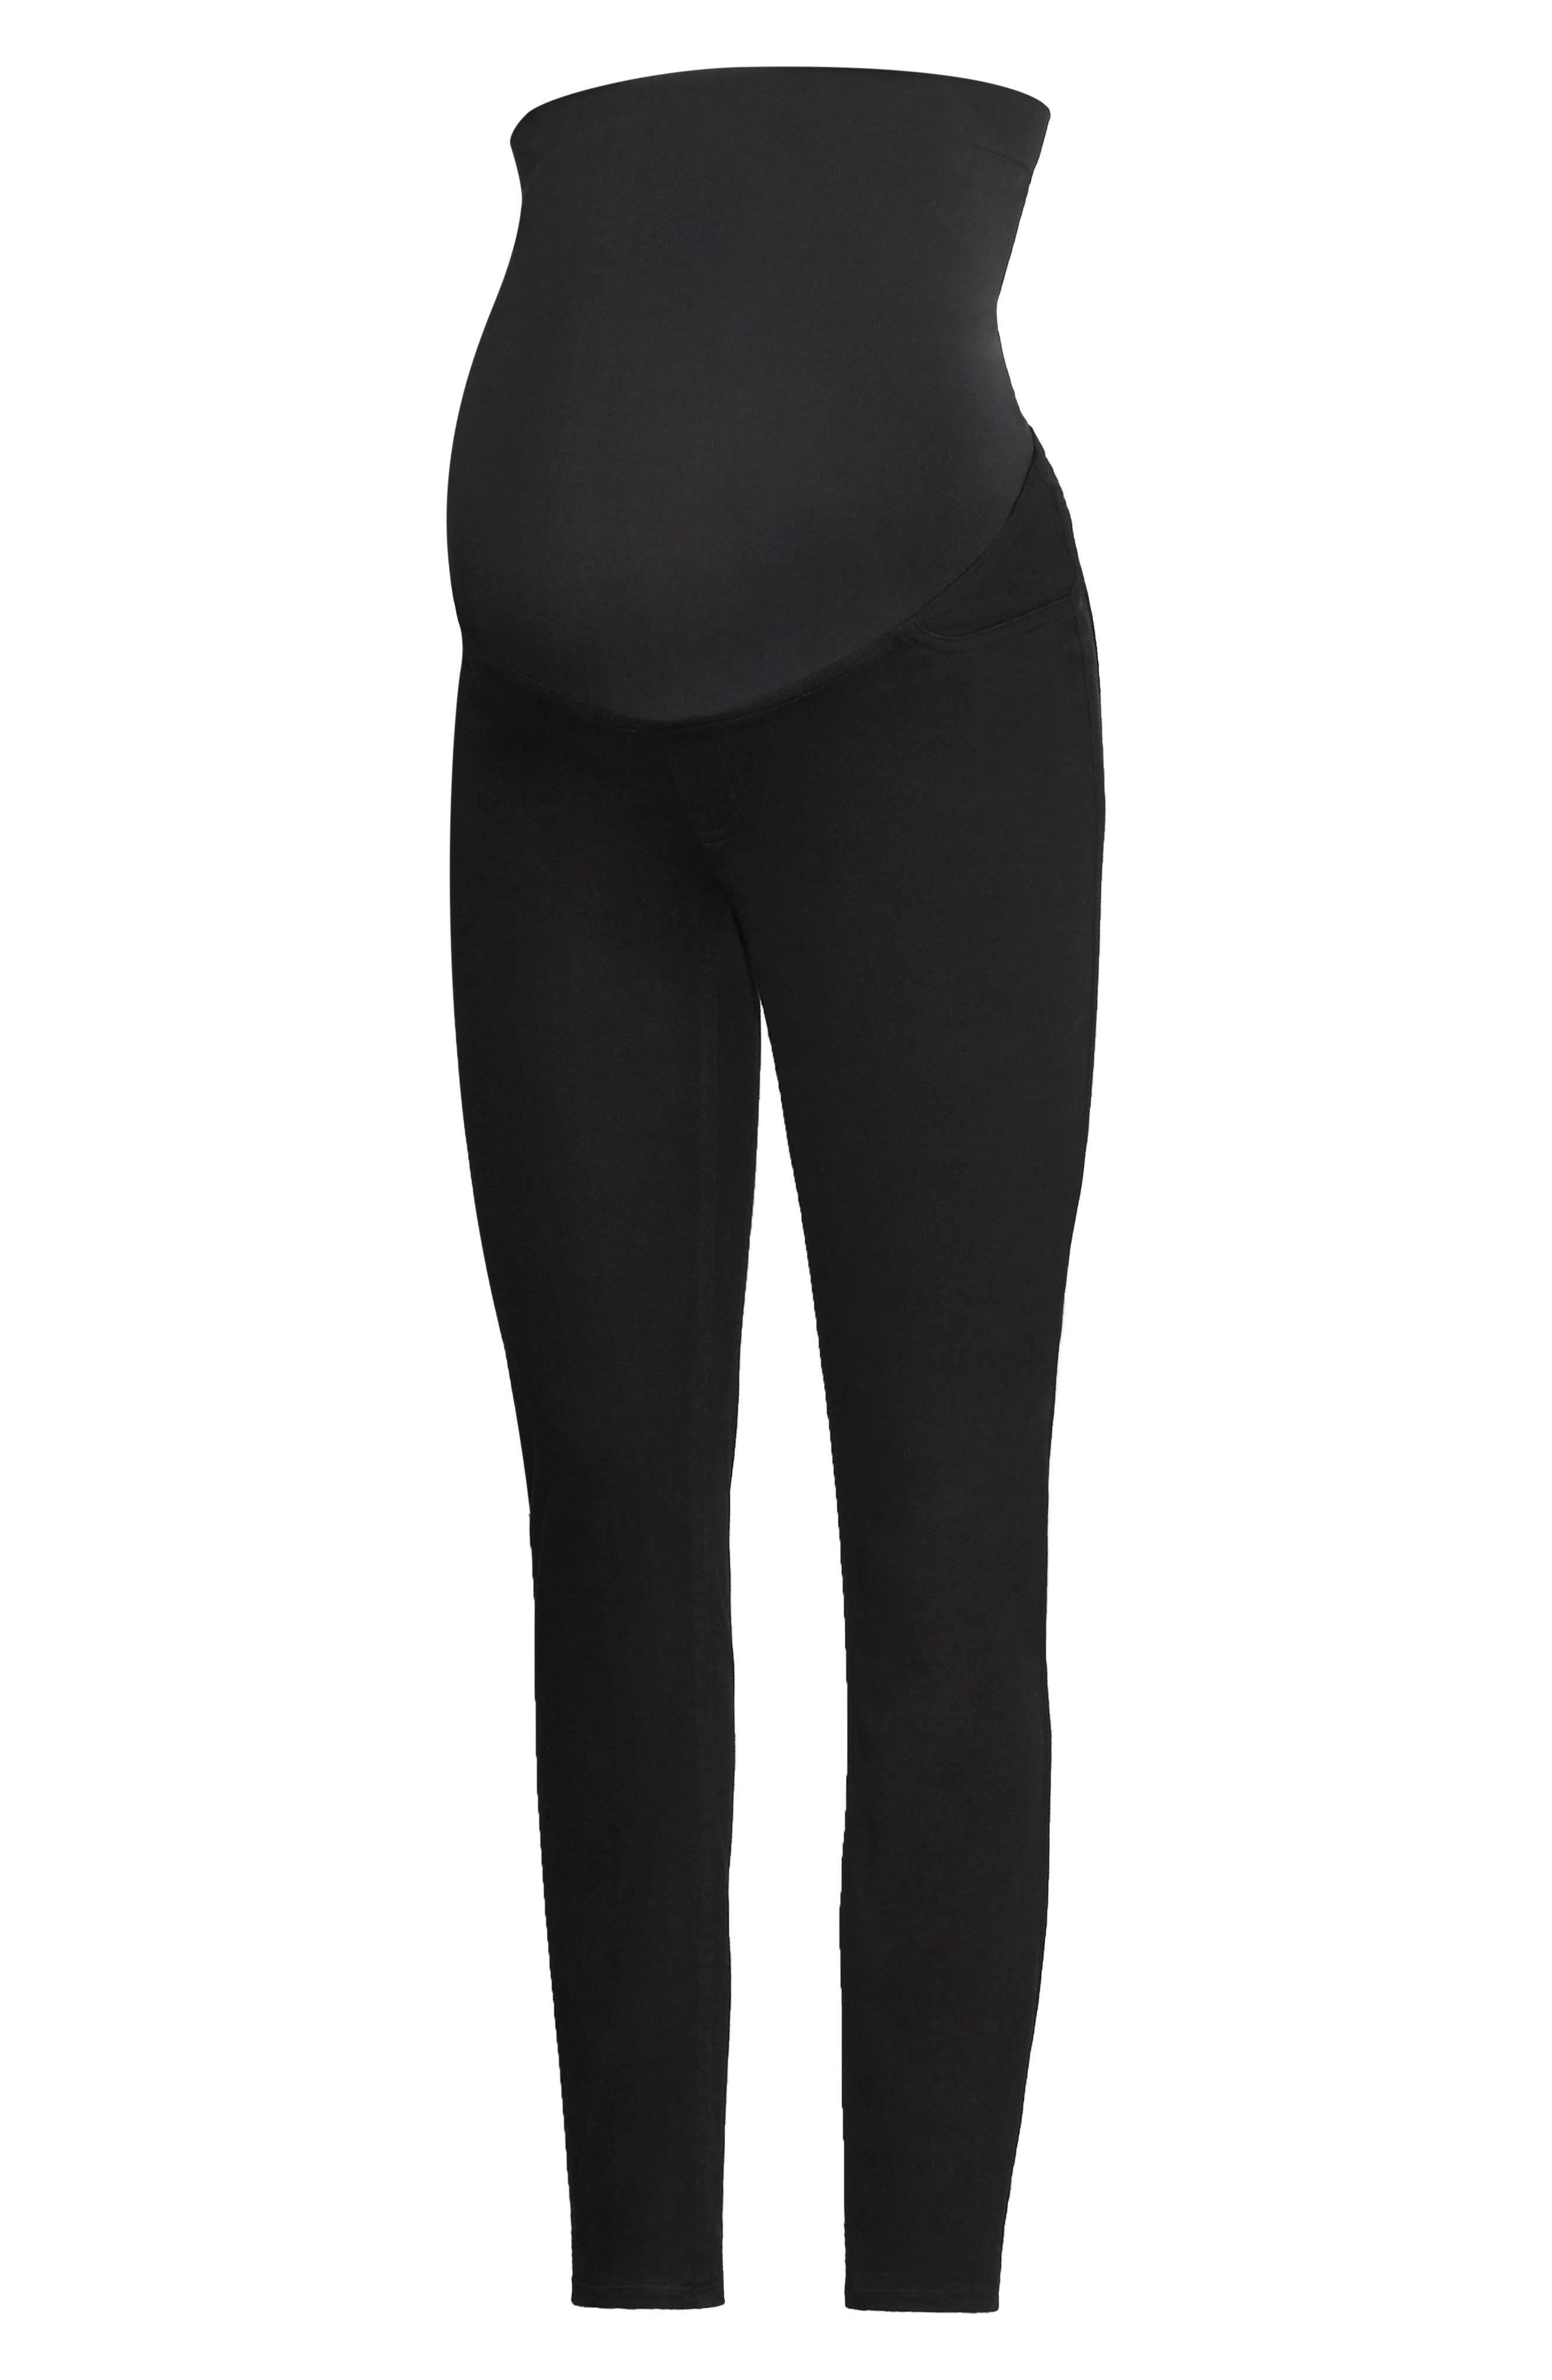 SPANX Women's Spanx Mama Ankle Jean-Ish Seamless Maternity Leggings